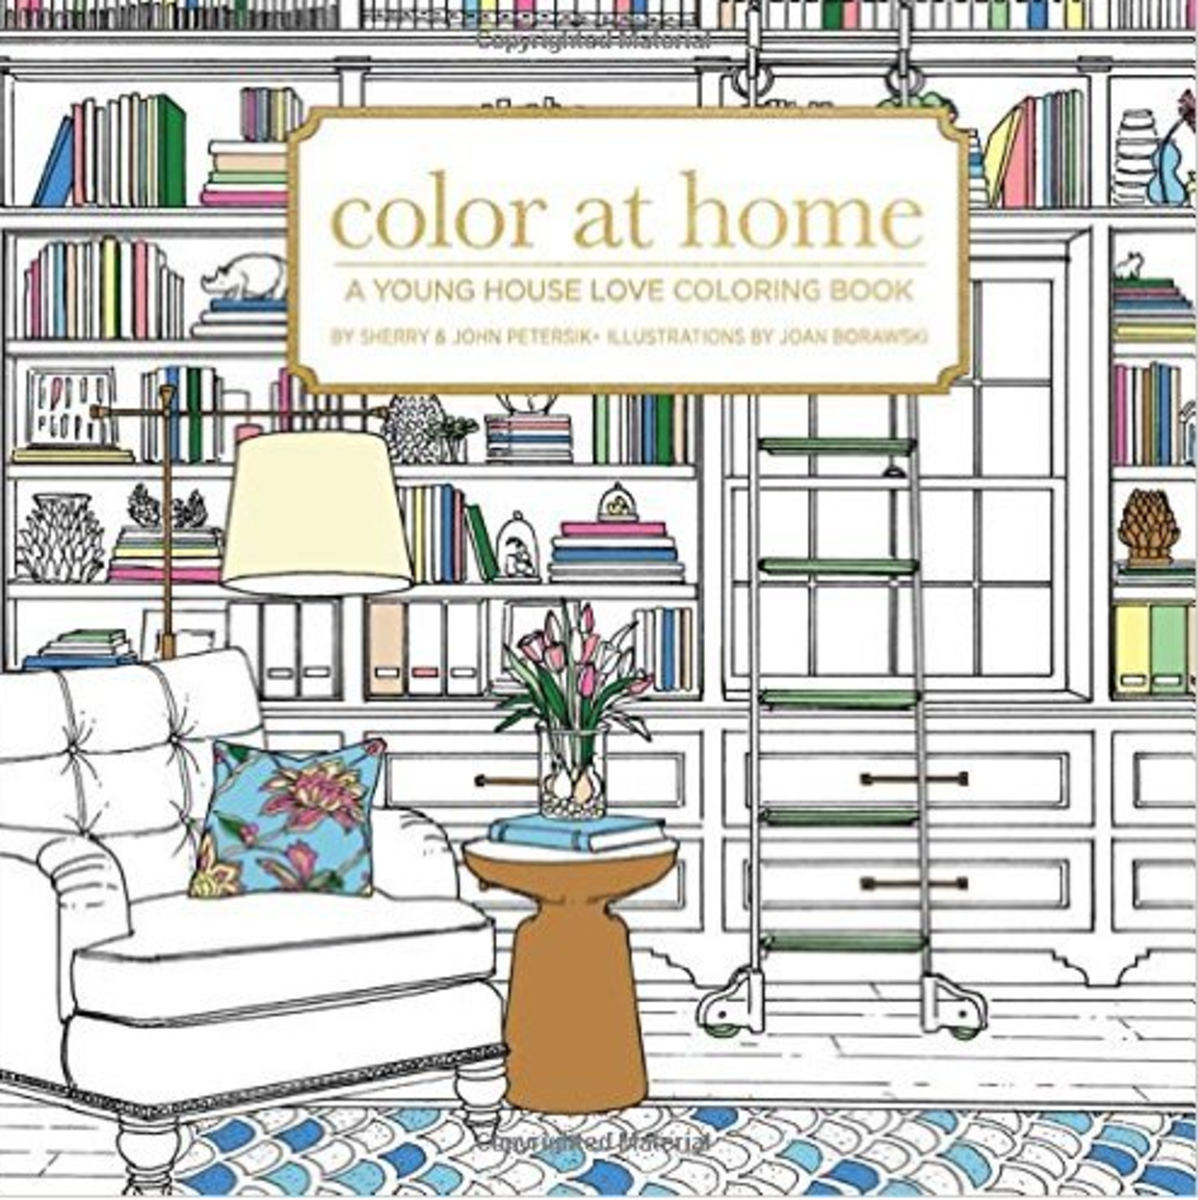 A colouring book for creative adults and art-inclined interior designers